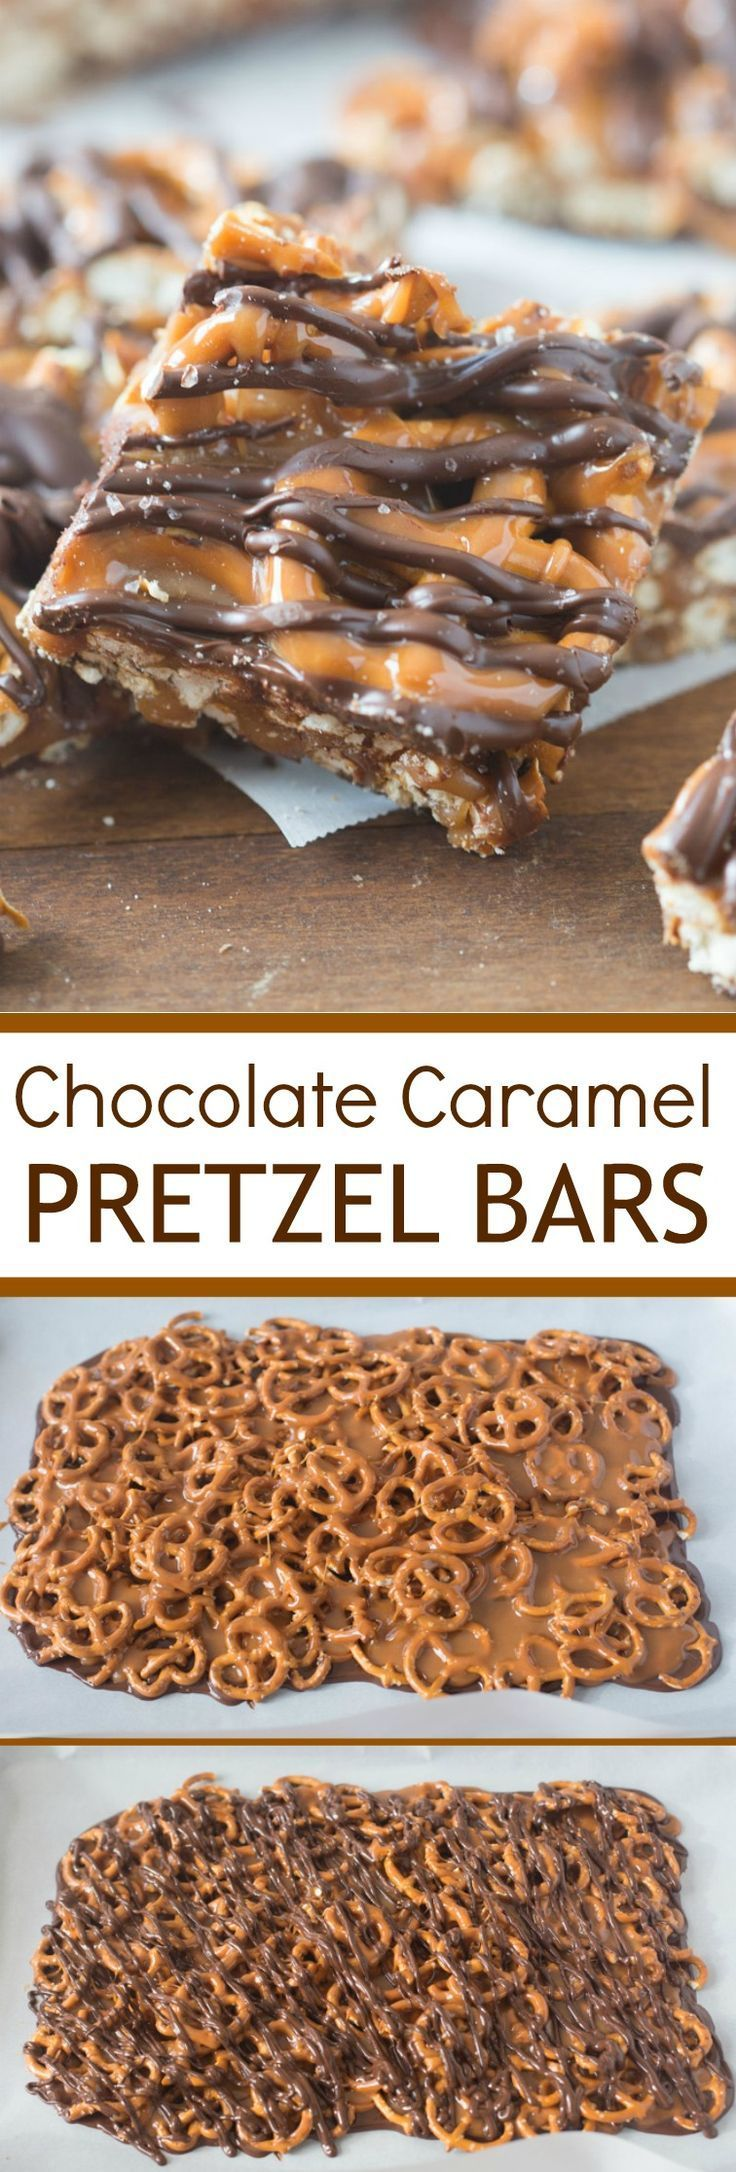 These simple, 4-ingredient Salted Chocolate Caramel Pretzel Bars will quickly become your new favorite sweet and salty treat! No bake and no candy thermometer needed. |